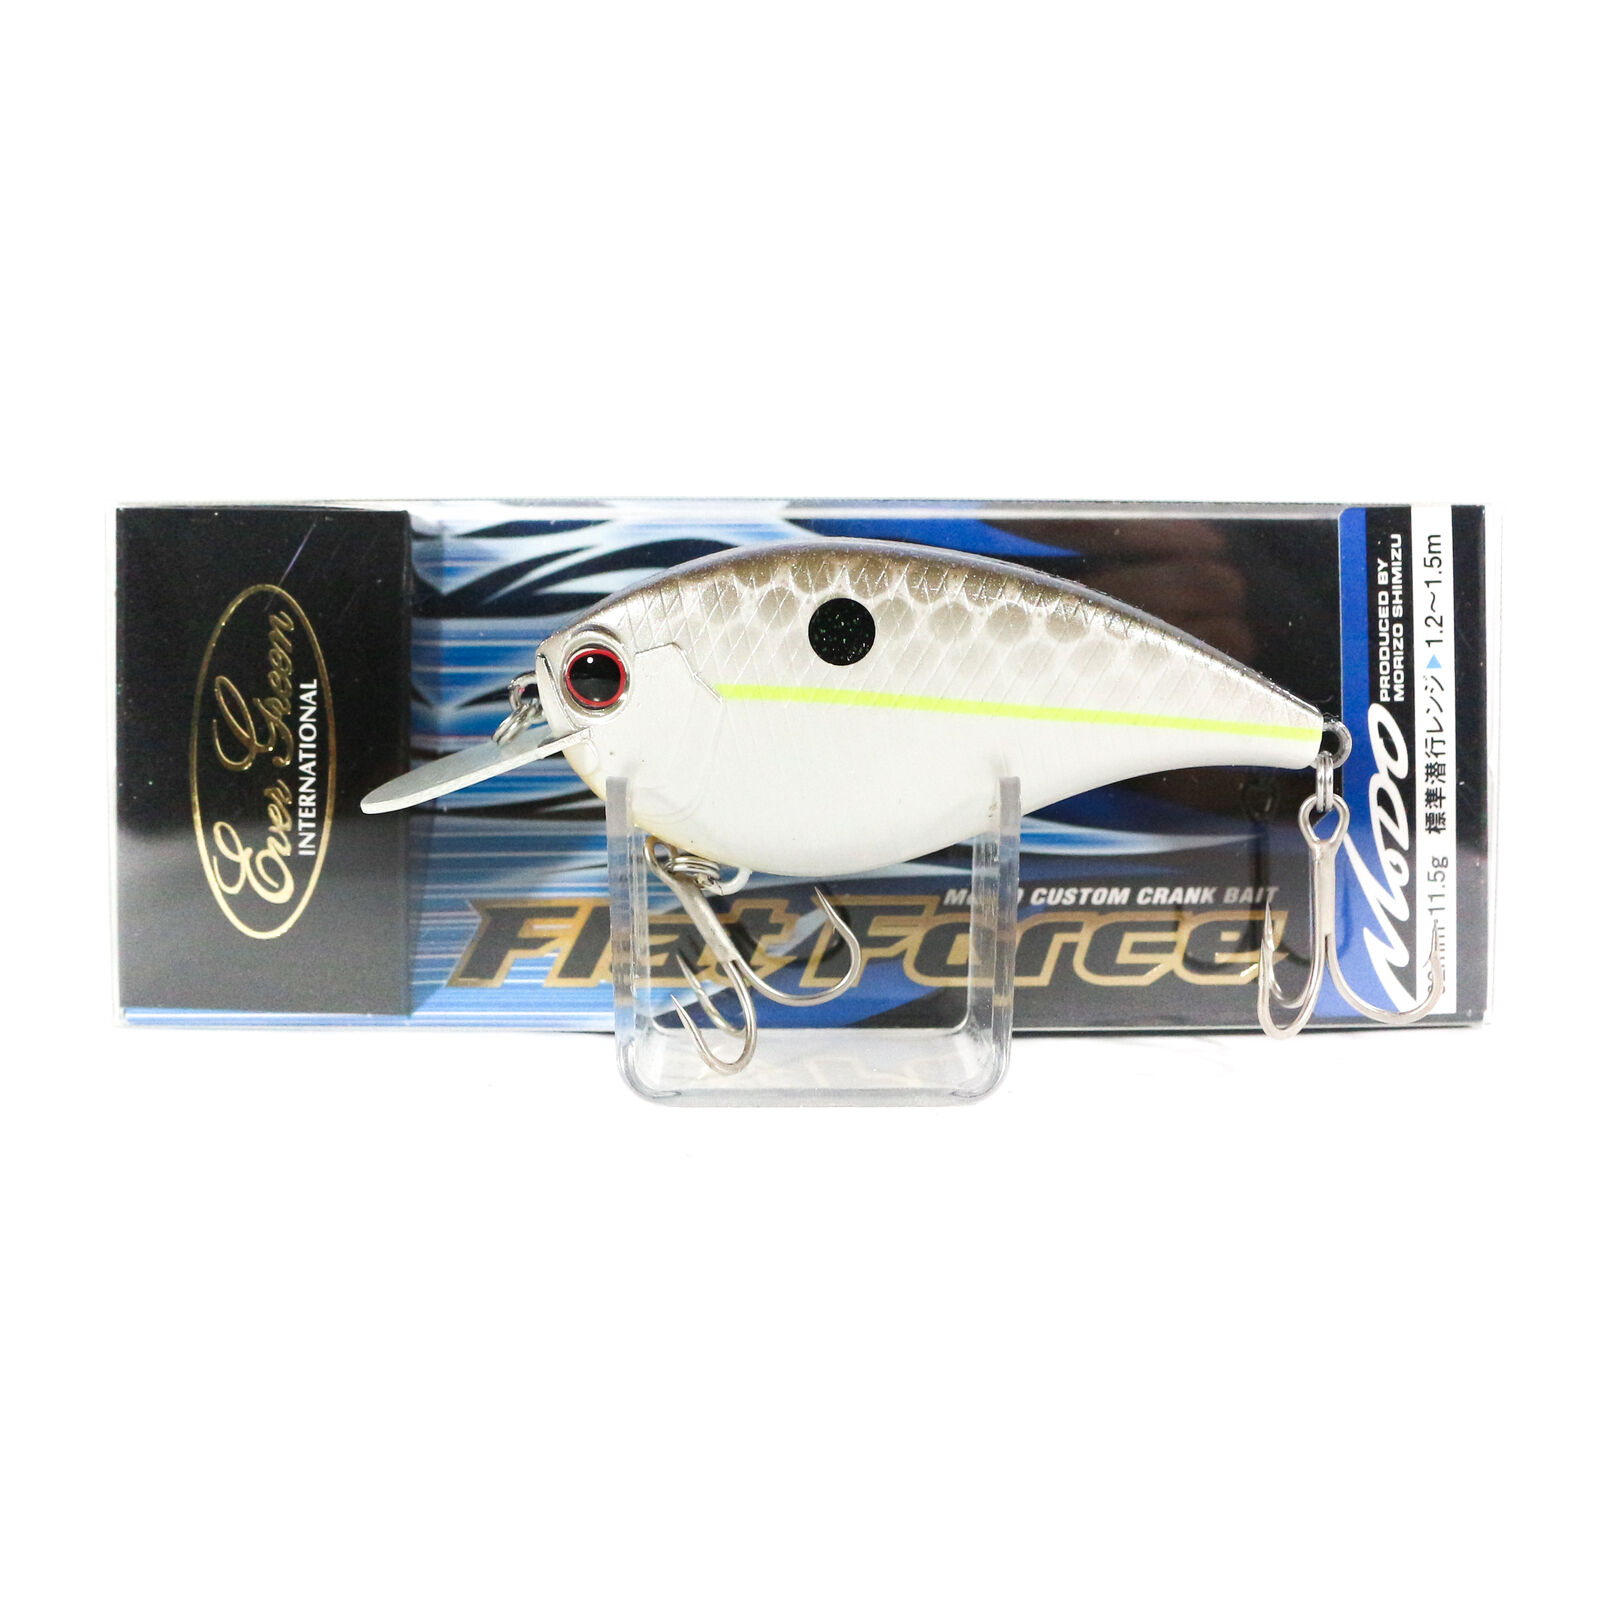 5977 Evergreen Lure Snap Size 1 Small